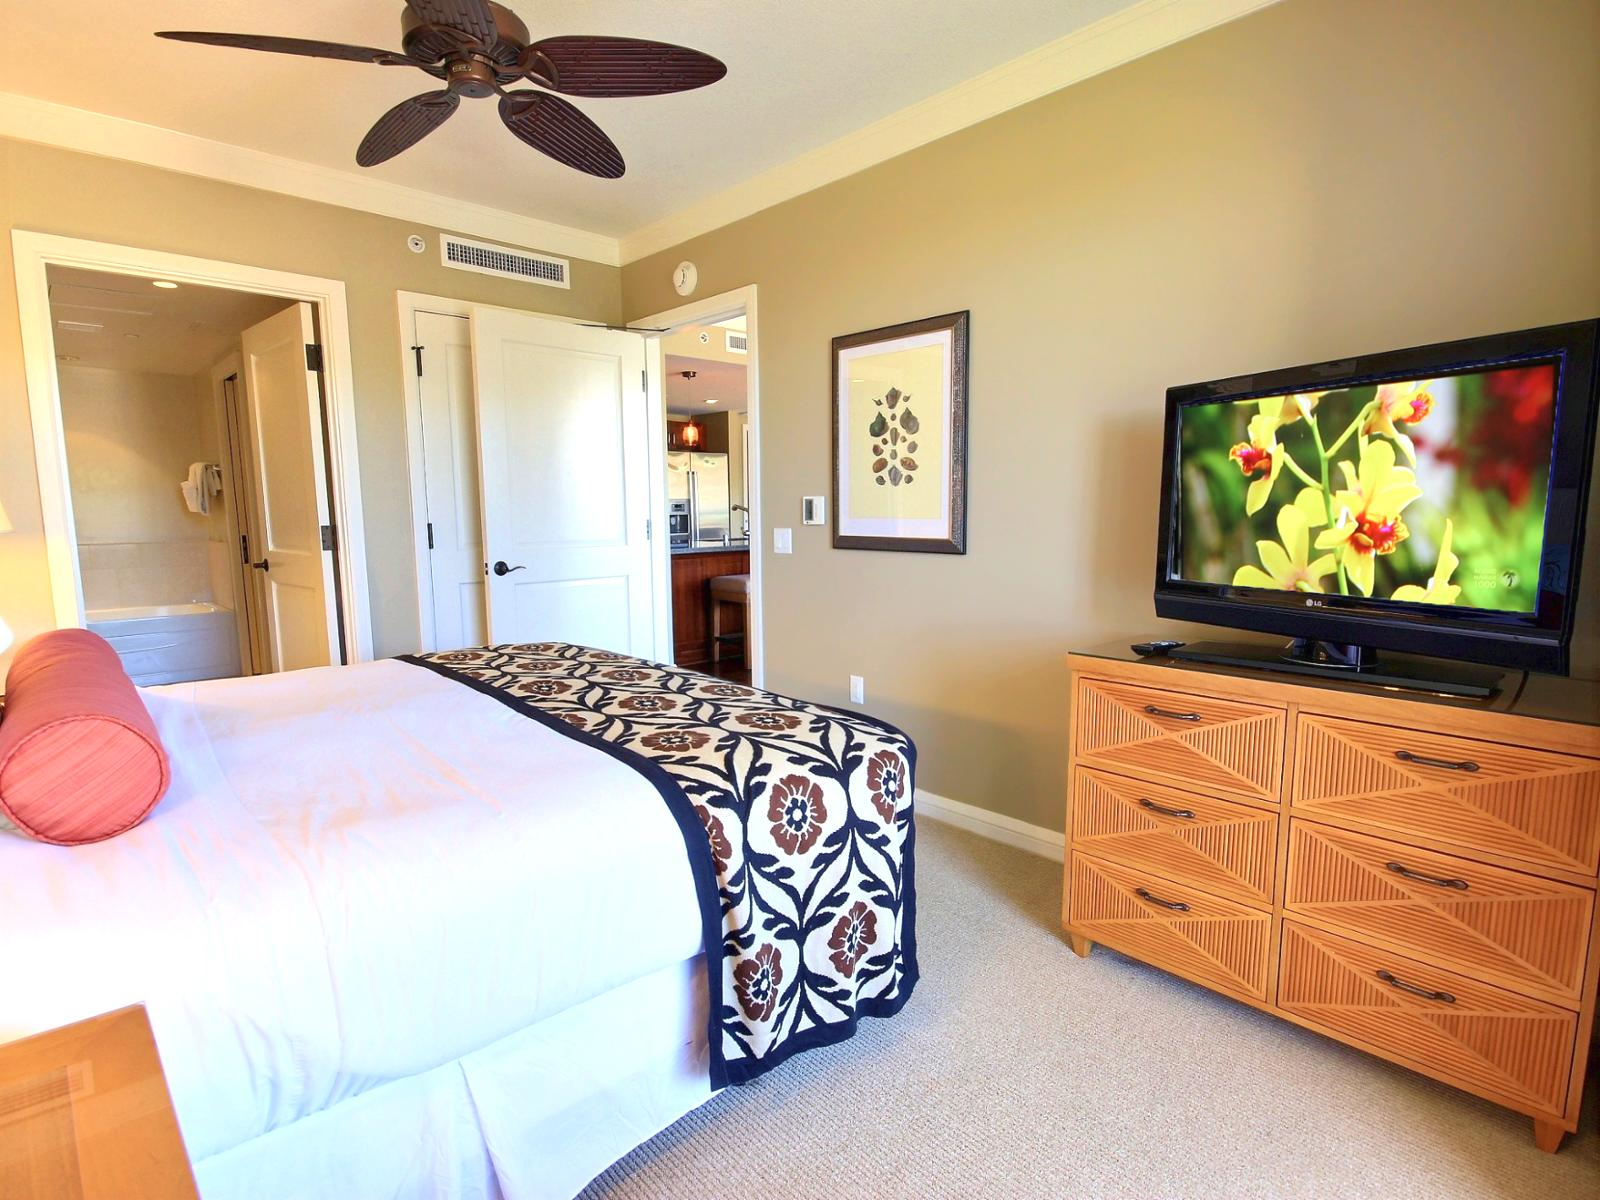 Large bedroom with LG Flatscreen TV.